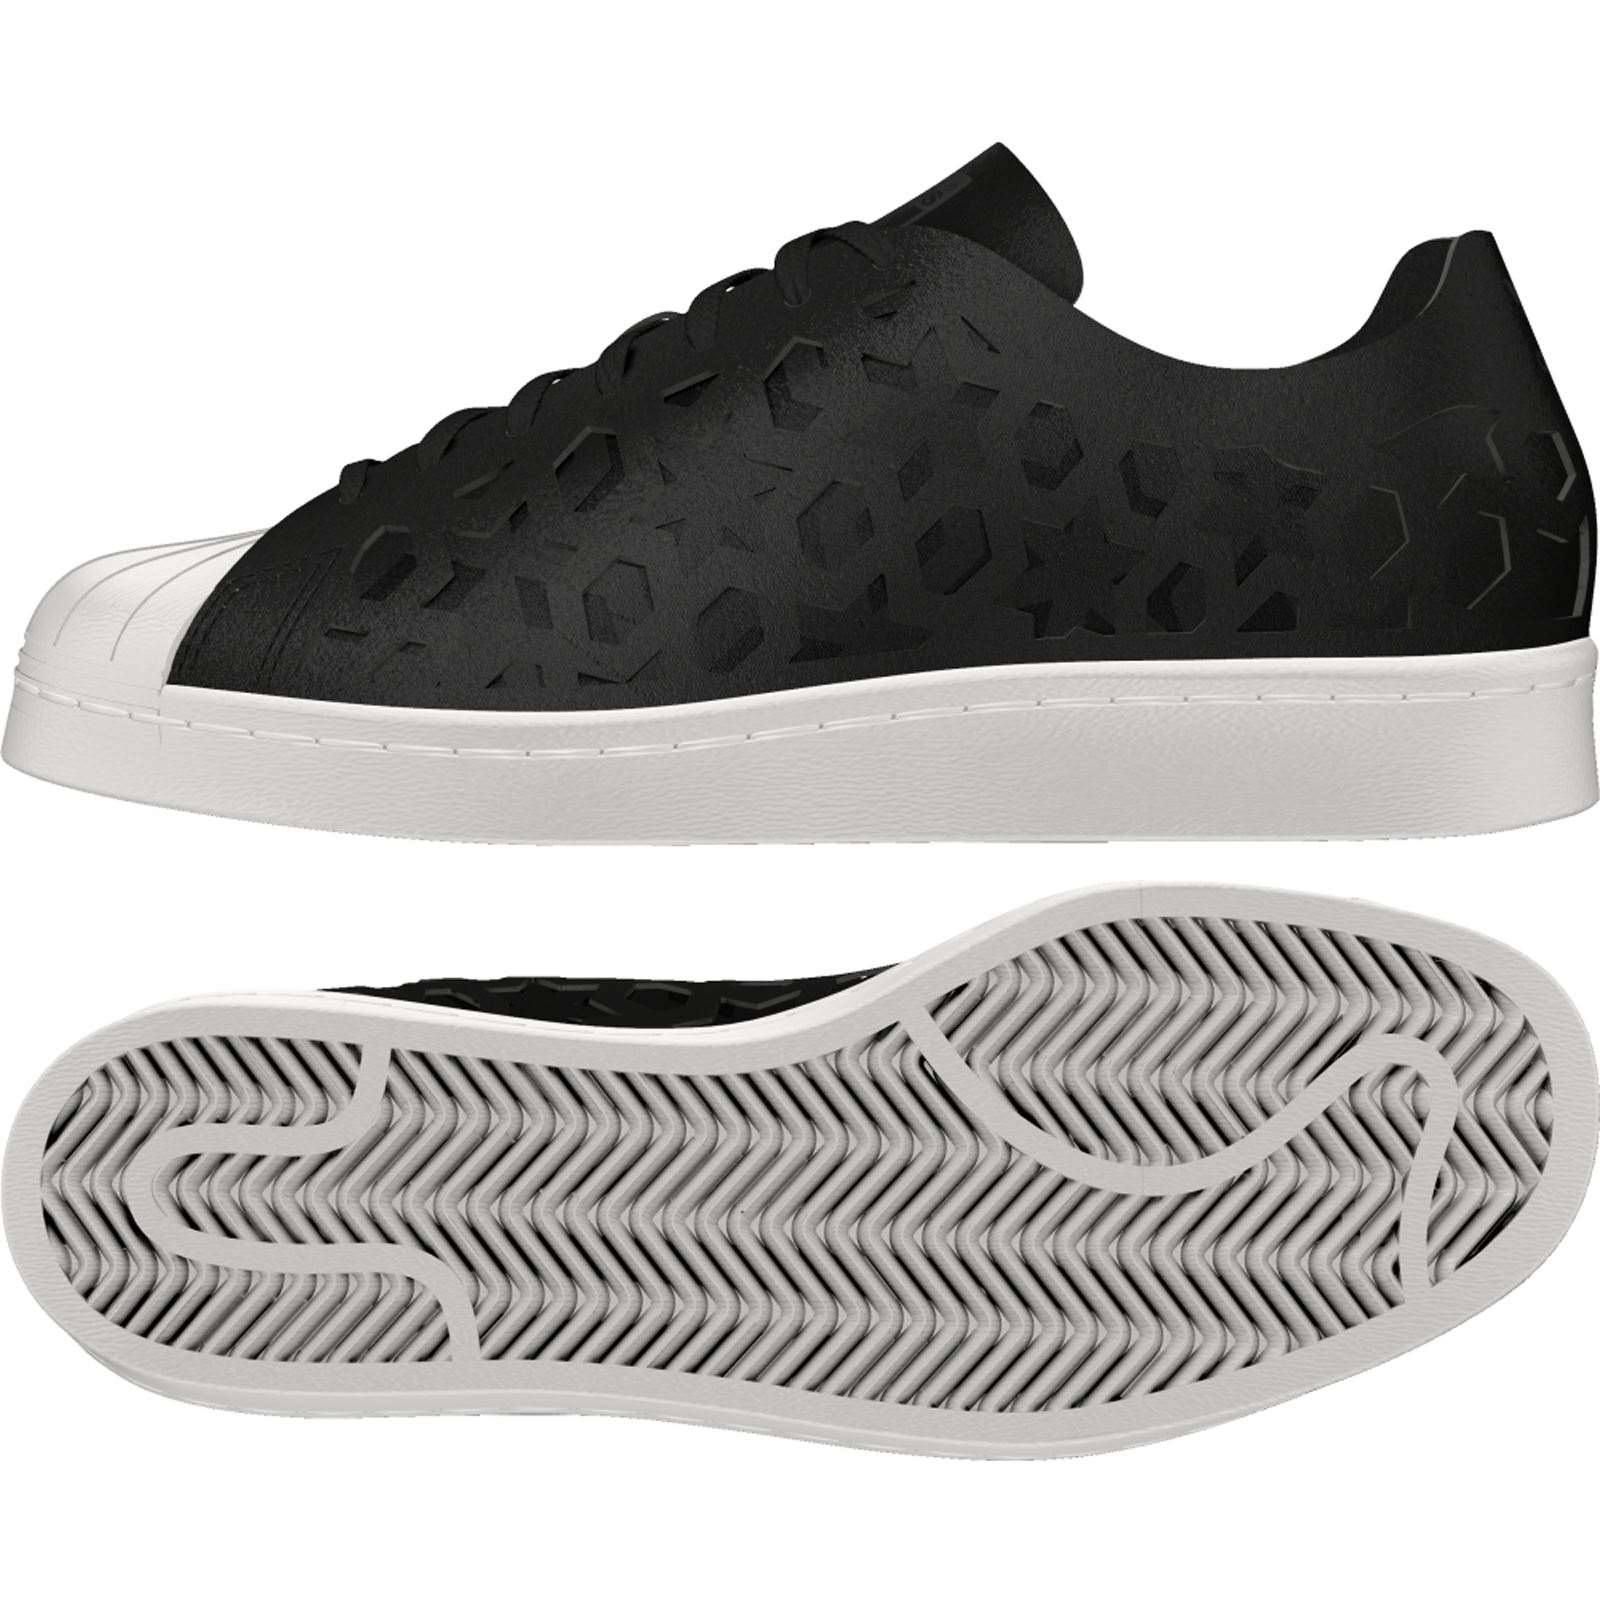 new products 86d97 766a1 ADIDAS ORIGINALS Superstar 80s Cut Out - Sneakers in pelle - nero